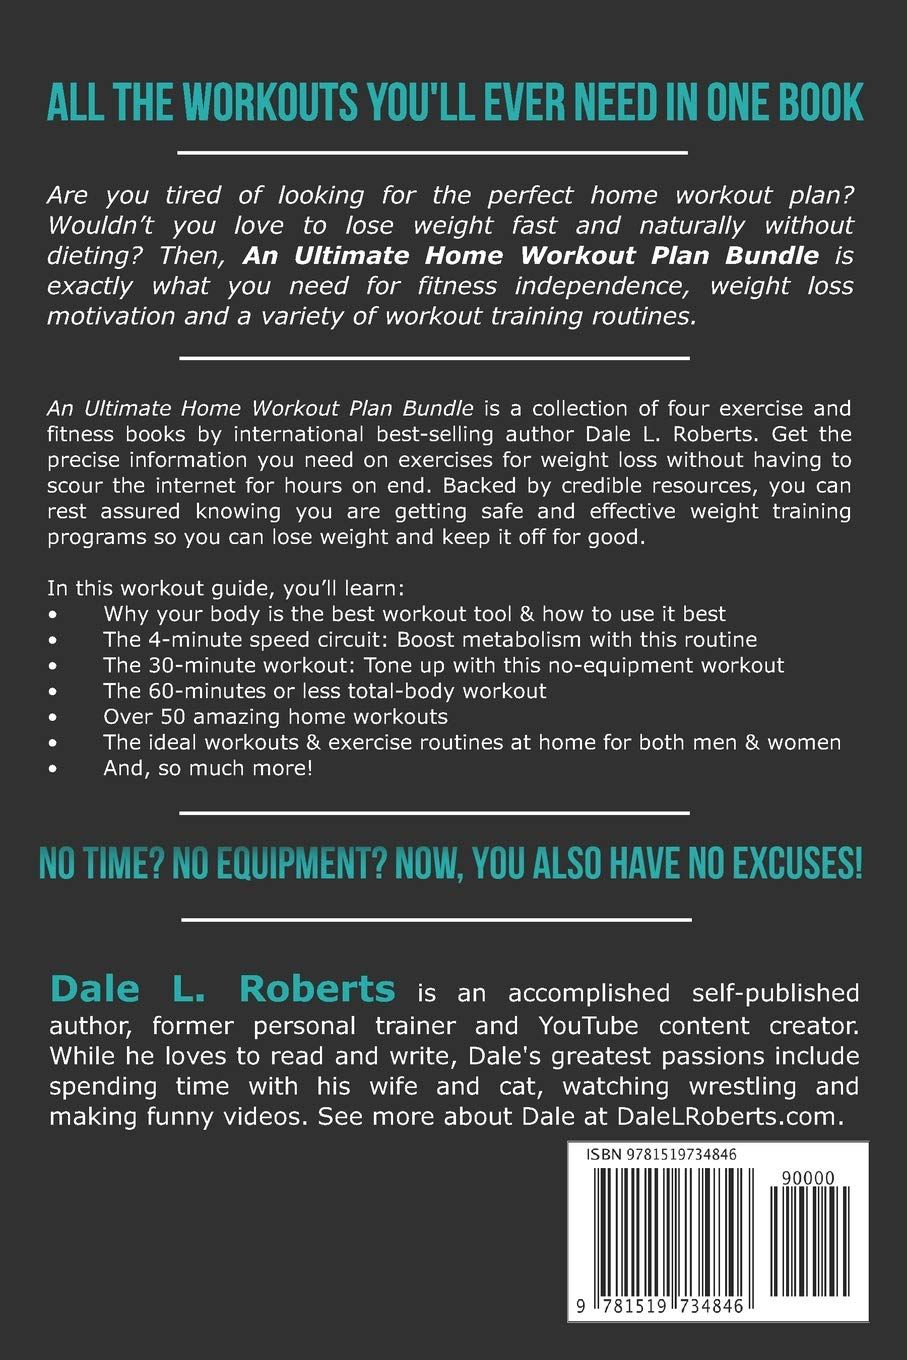 An Ultimate Home Workout Plan Bundle: The Very Best Collection of